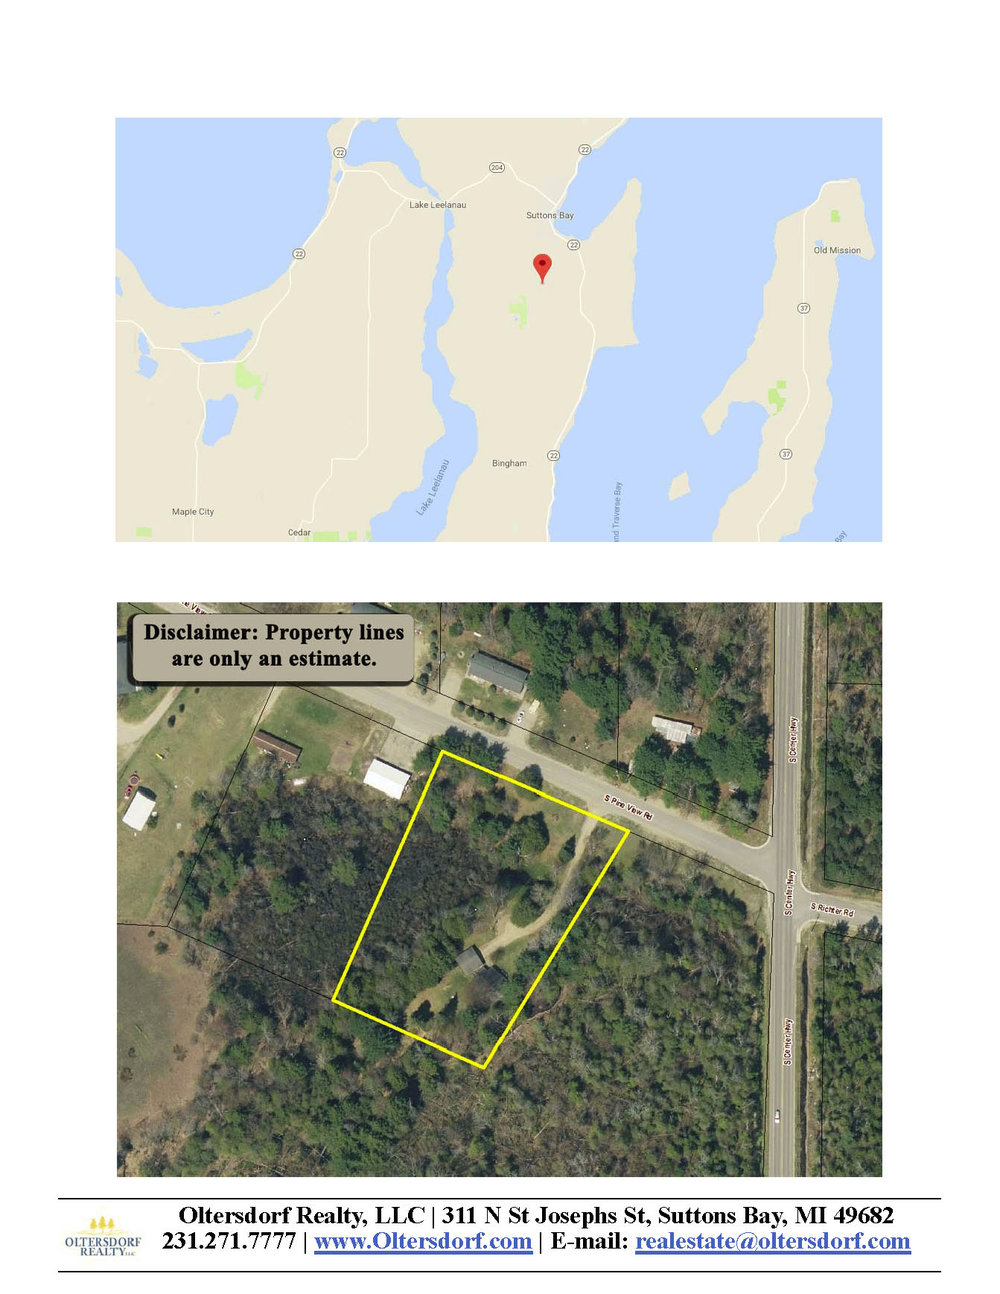 2566 S Pine View Road, Suttons Bay, MI – Affordable 3 Bedroom Suttons Bay Ranch Home for sale by Oltersdorf Realty - Marketing Packet (7).jpg